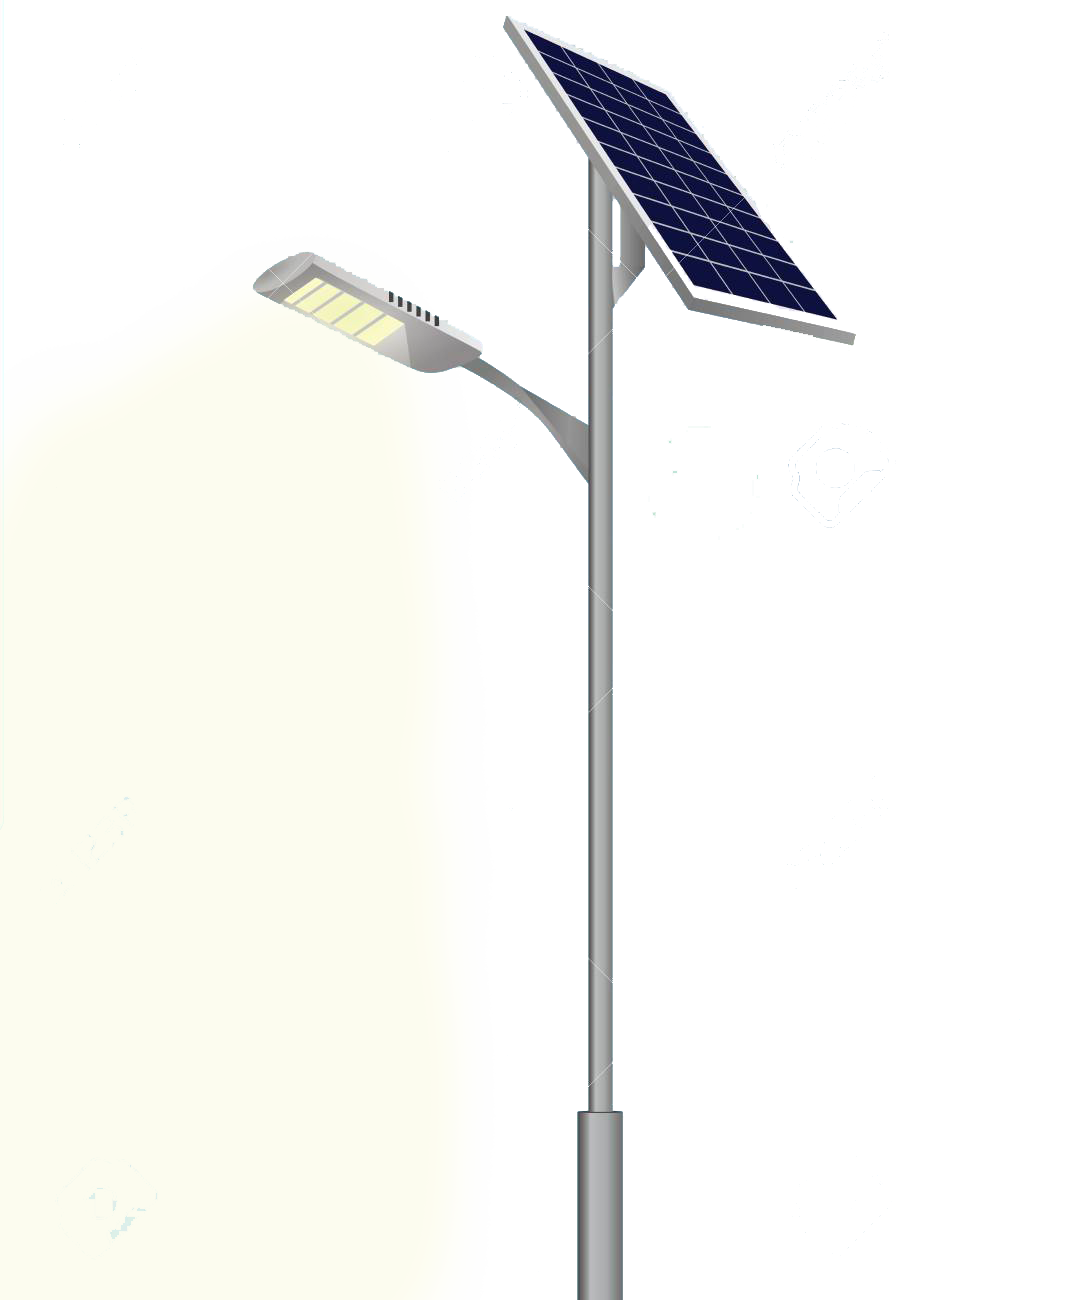 83388804-street-light-with-solar-panels-vector